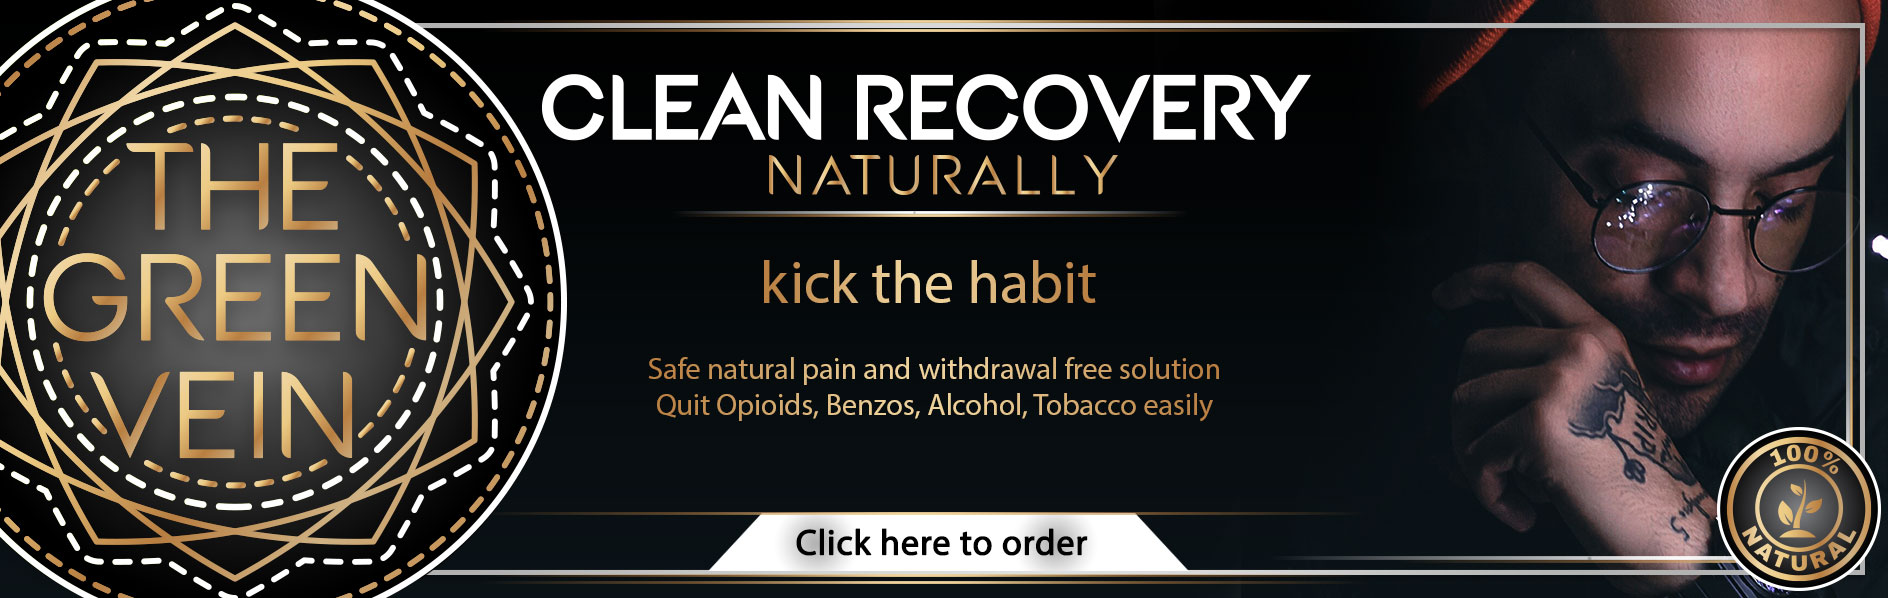 The-Green-Vein-Clean-Recovery-Banner